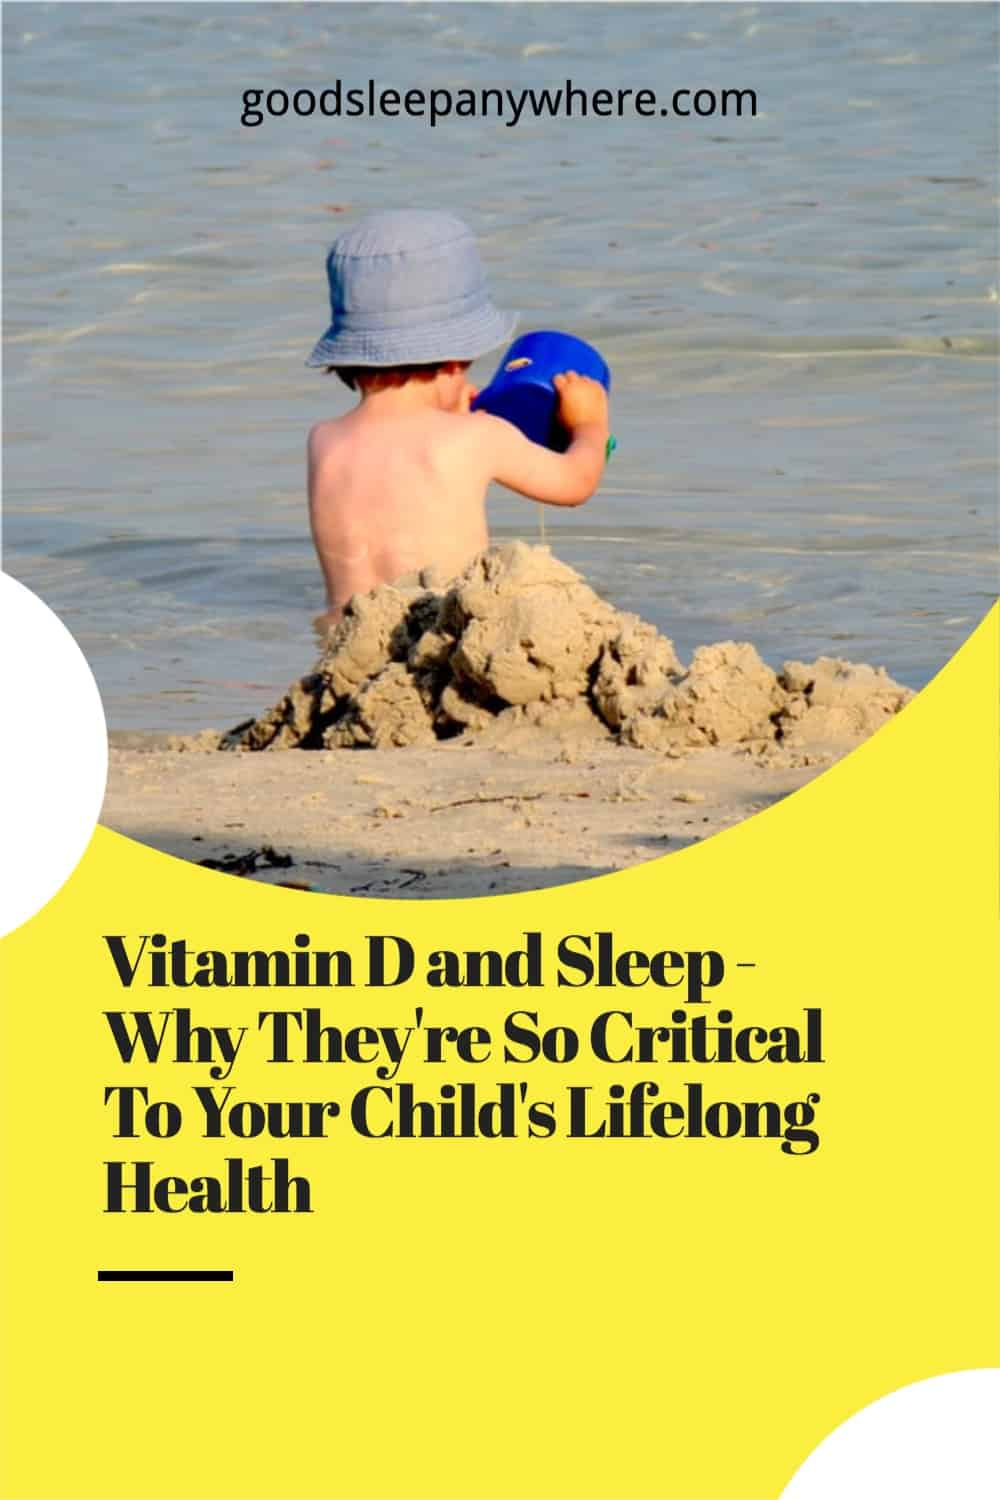 Vitamin D and Sleep - Why They're So Critical To Your Child's Lifelong Health. (1)